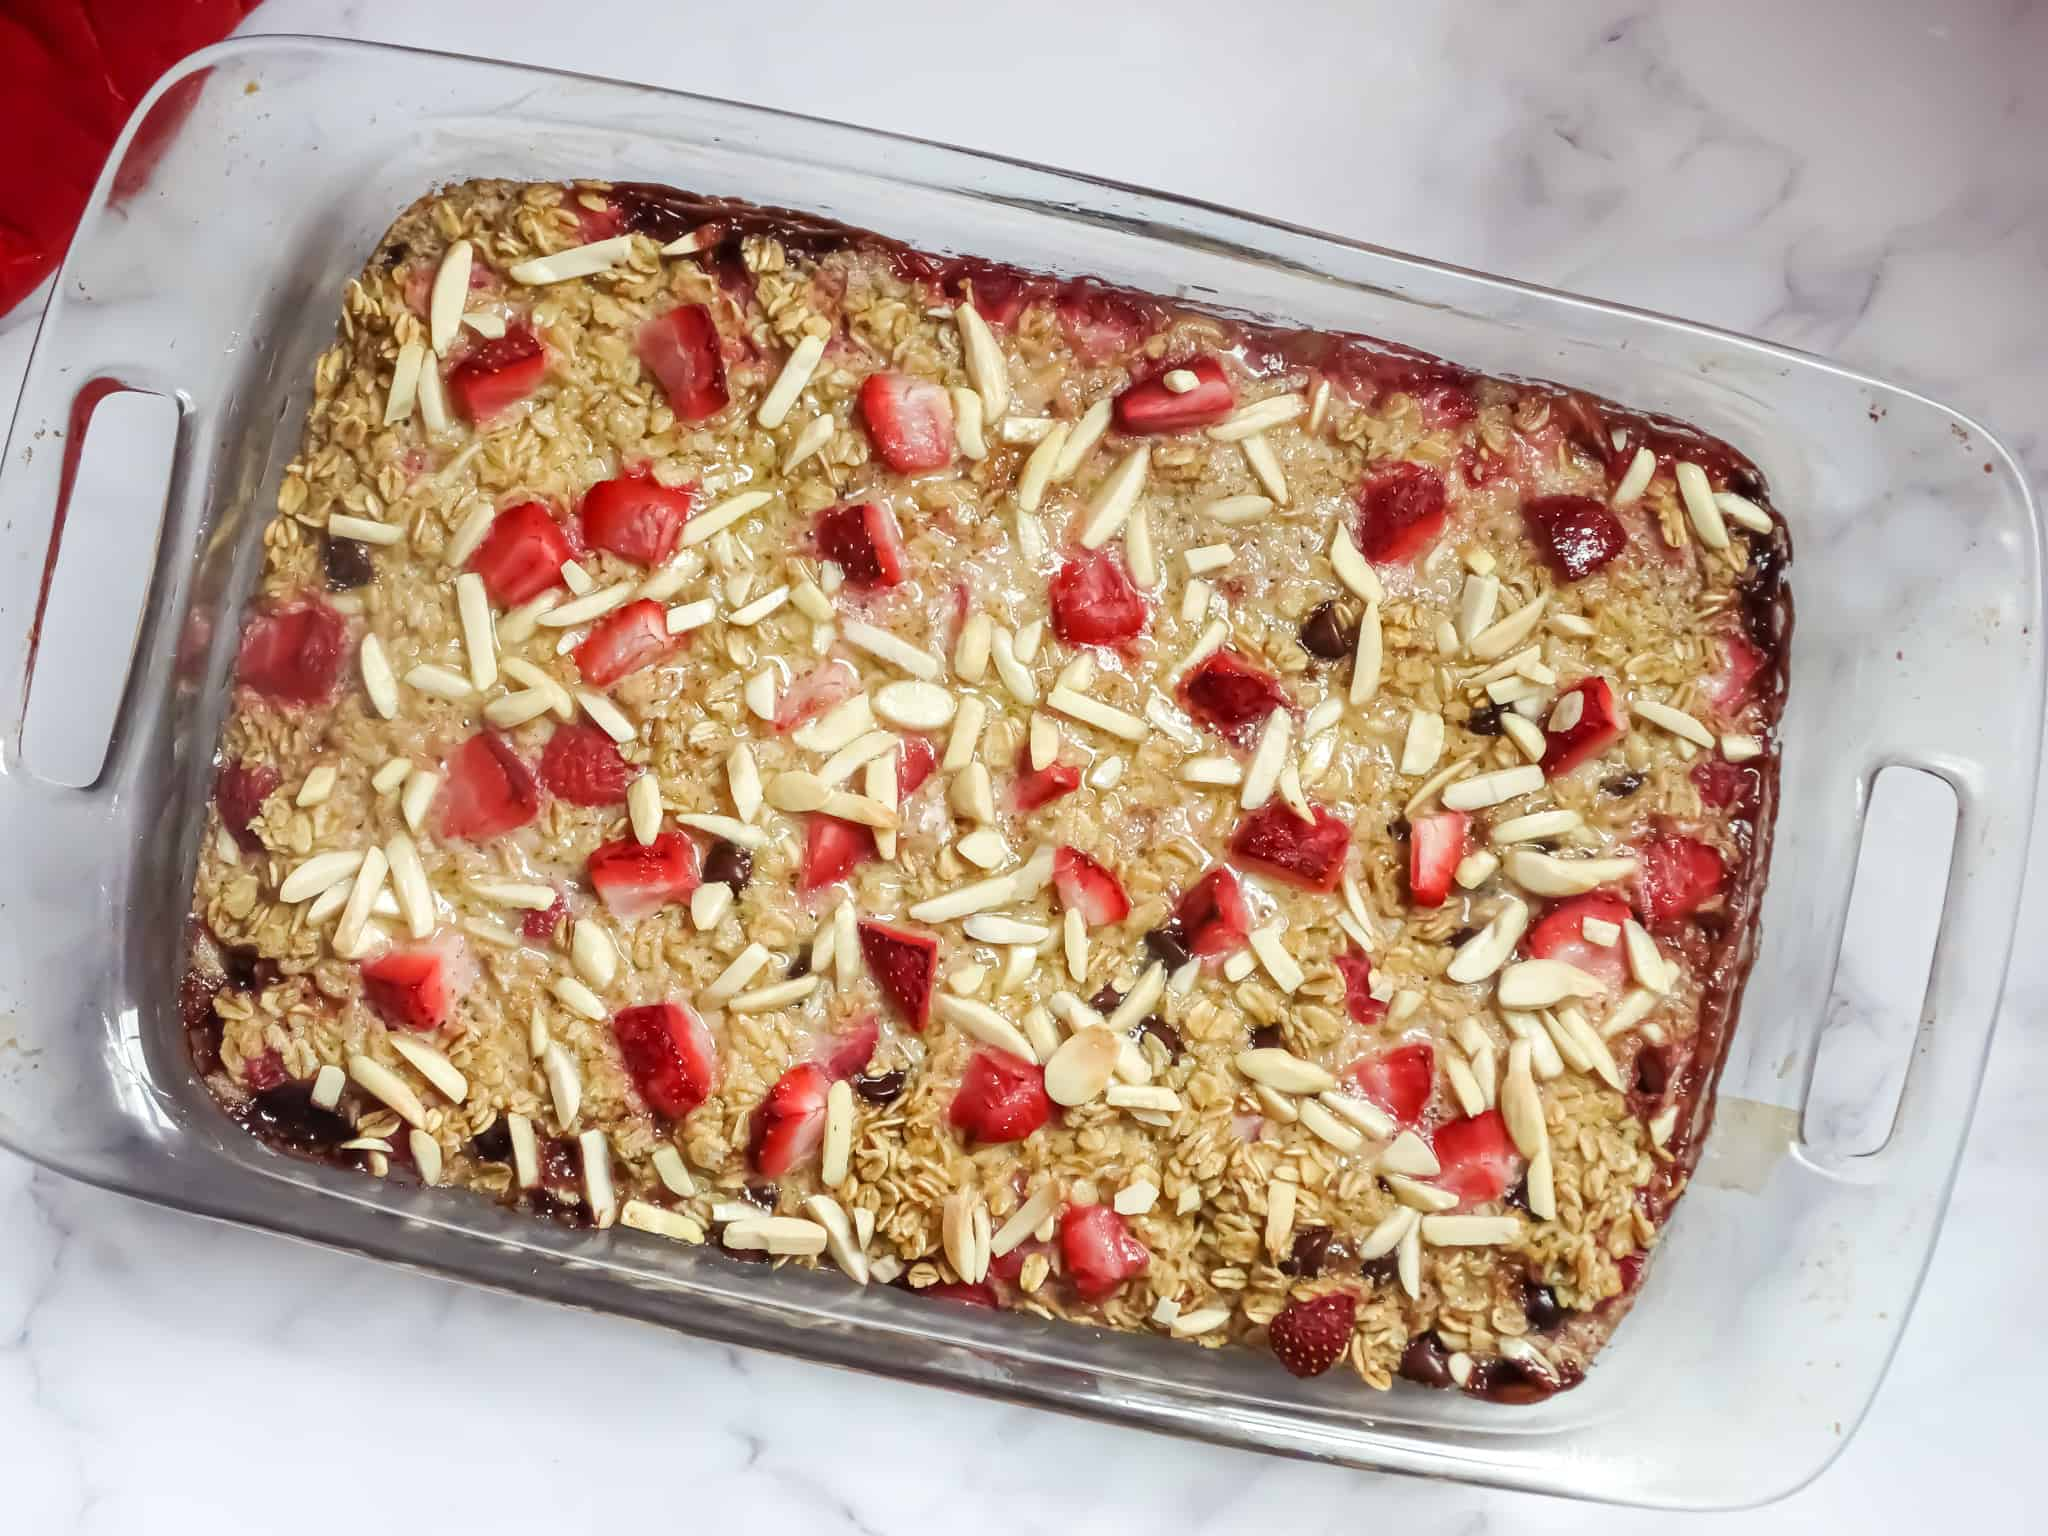 strawberry baked oatmeal recipe in a clear baking dish